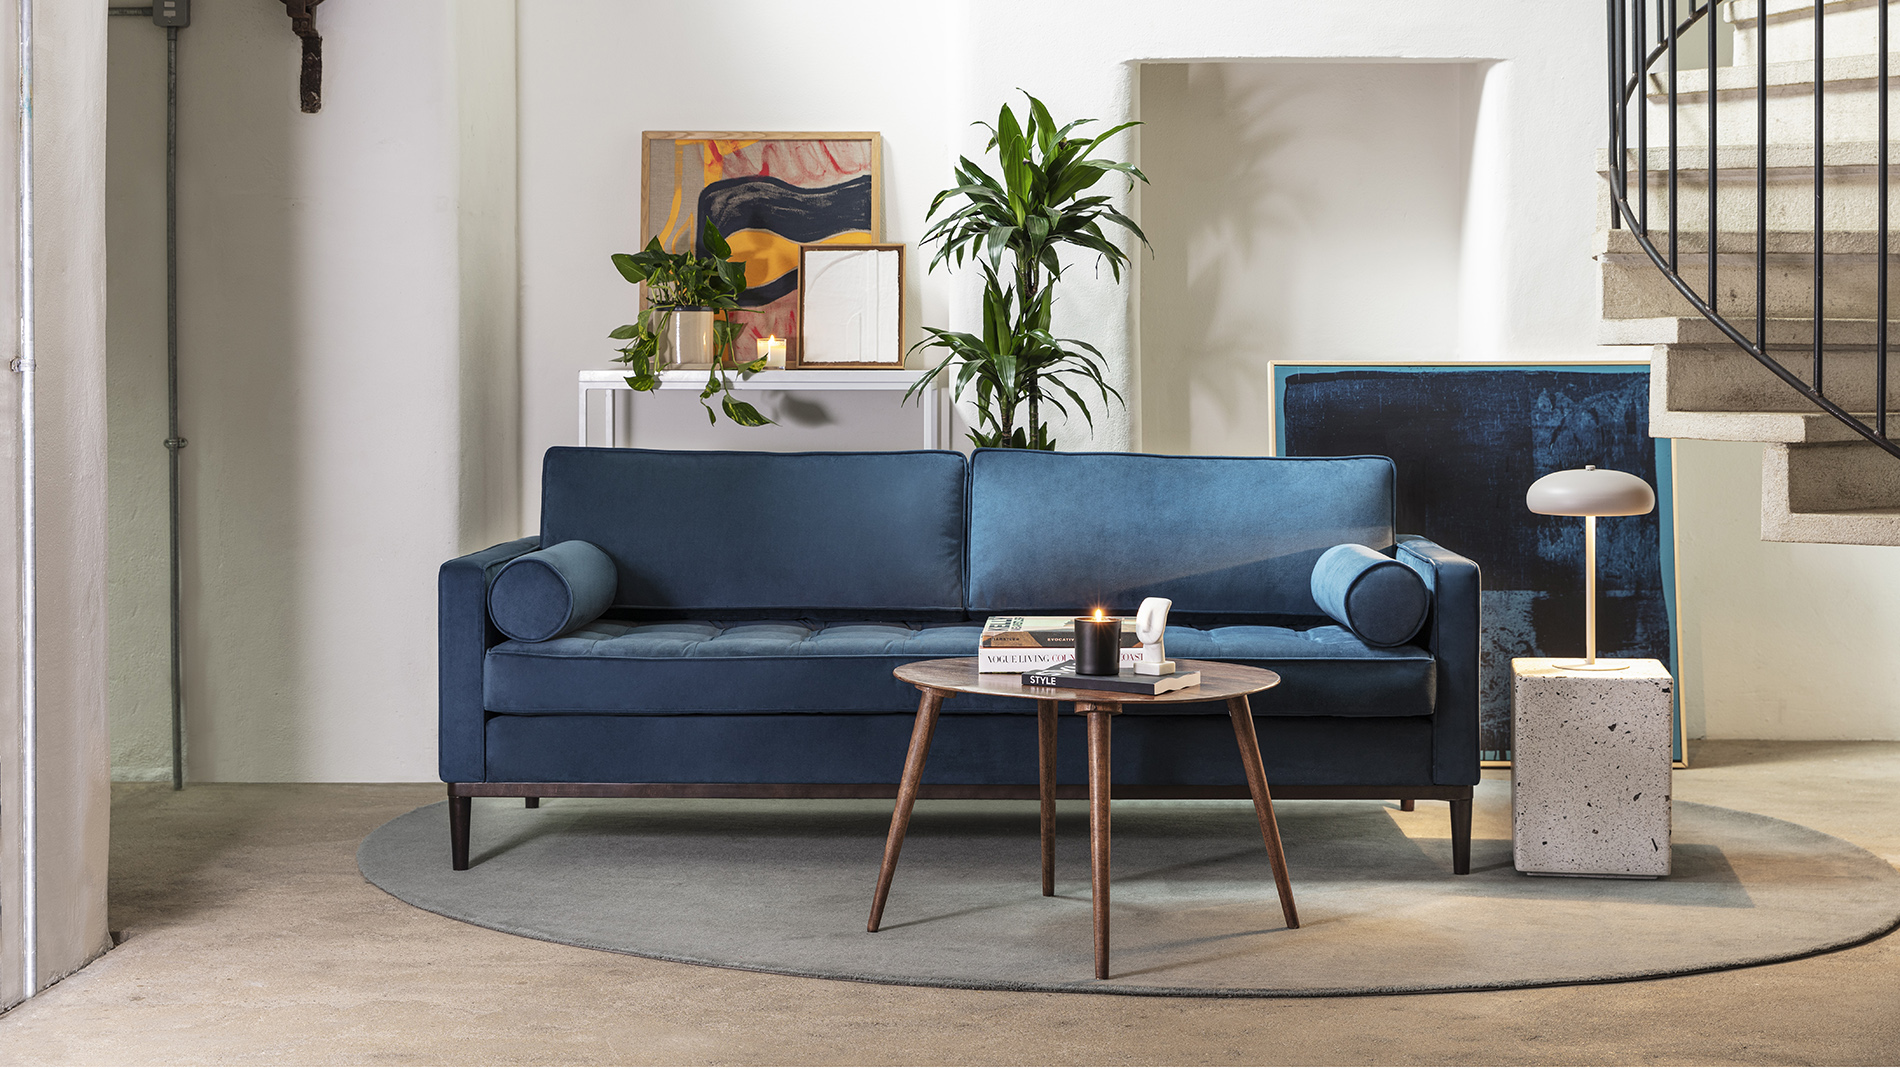 8 Best Sofas 2021 Trendsetting Sofas For Stylish Homes Real Homes